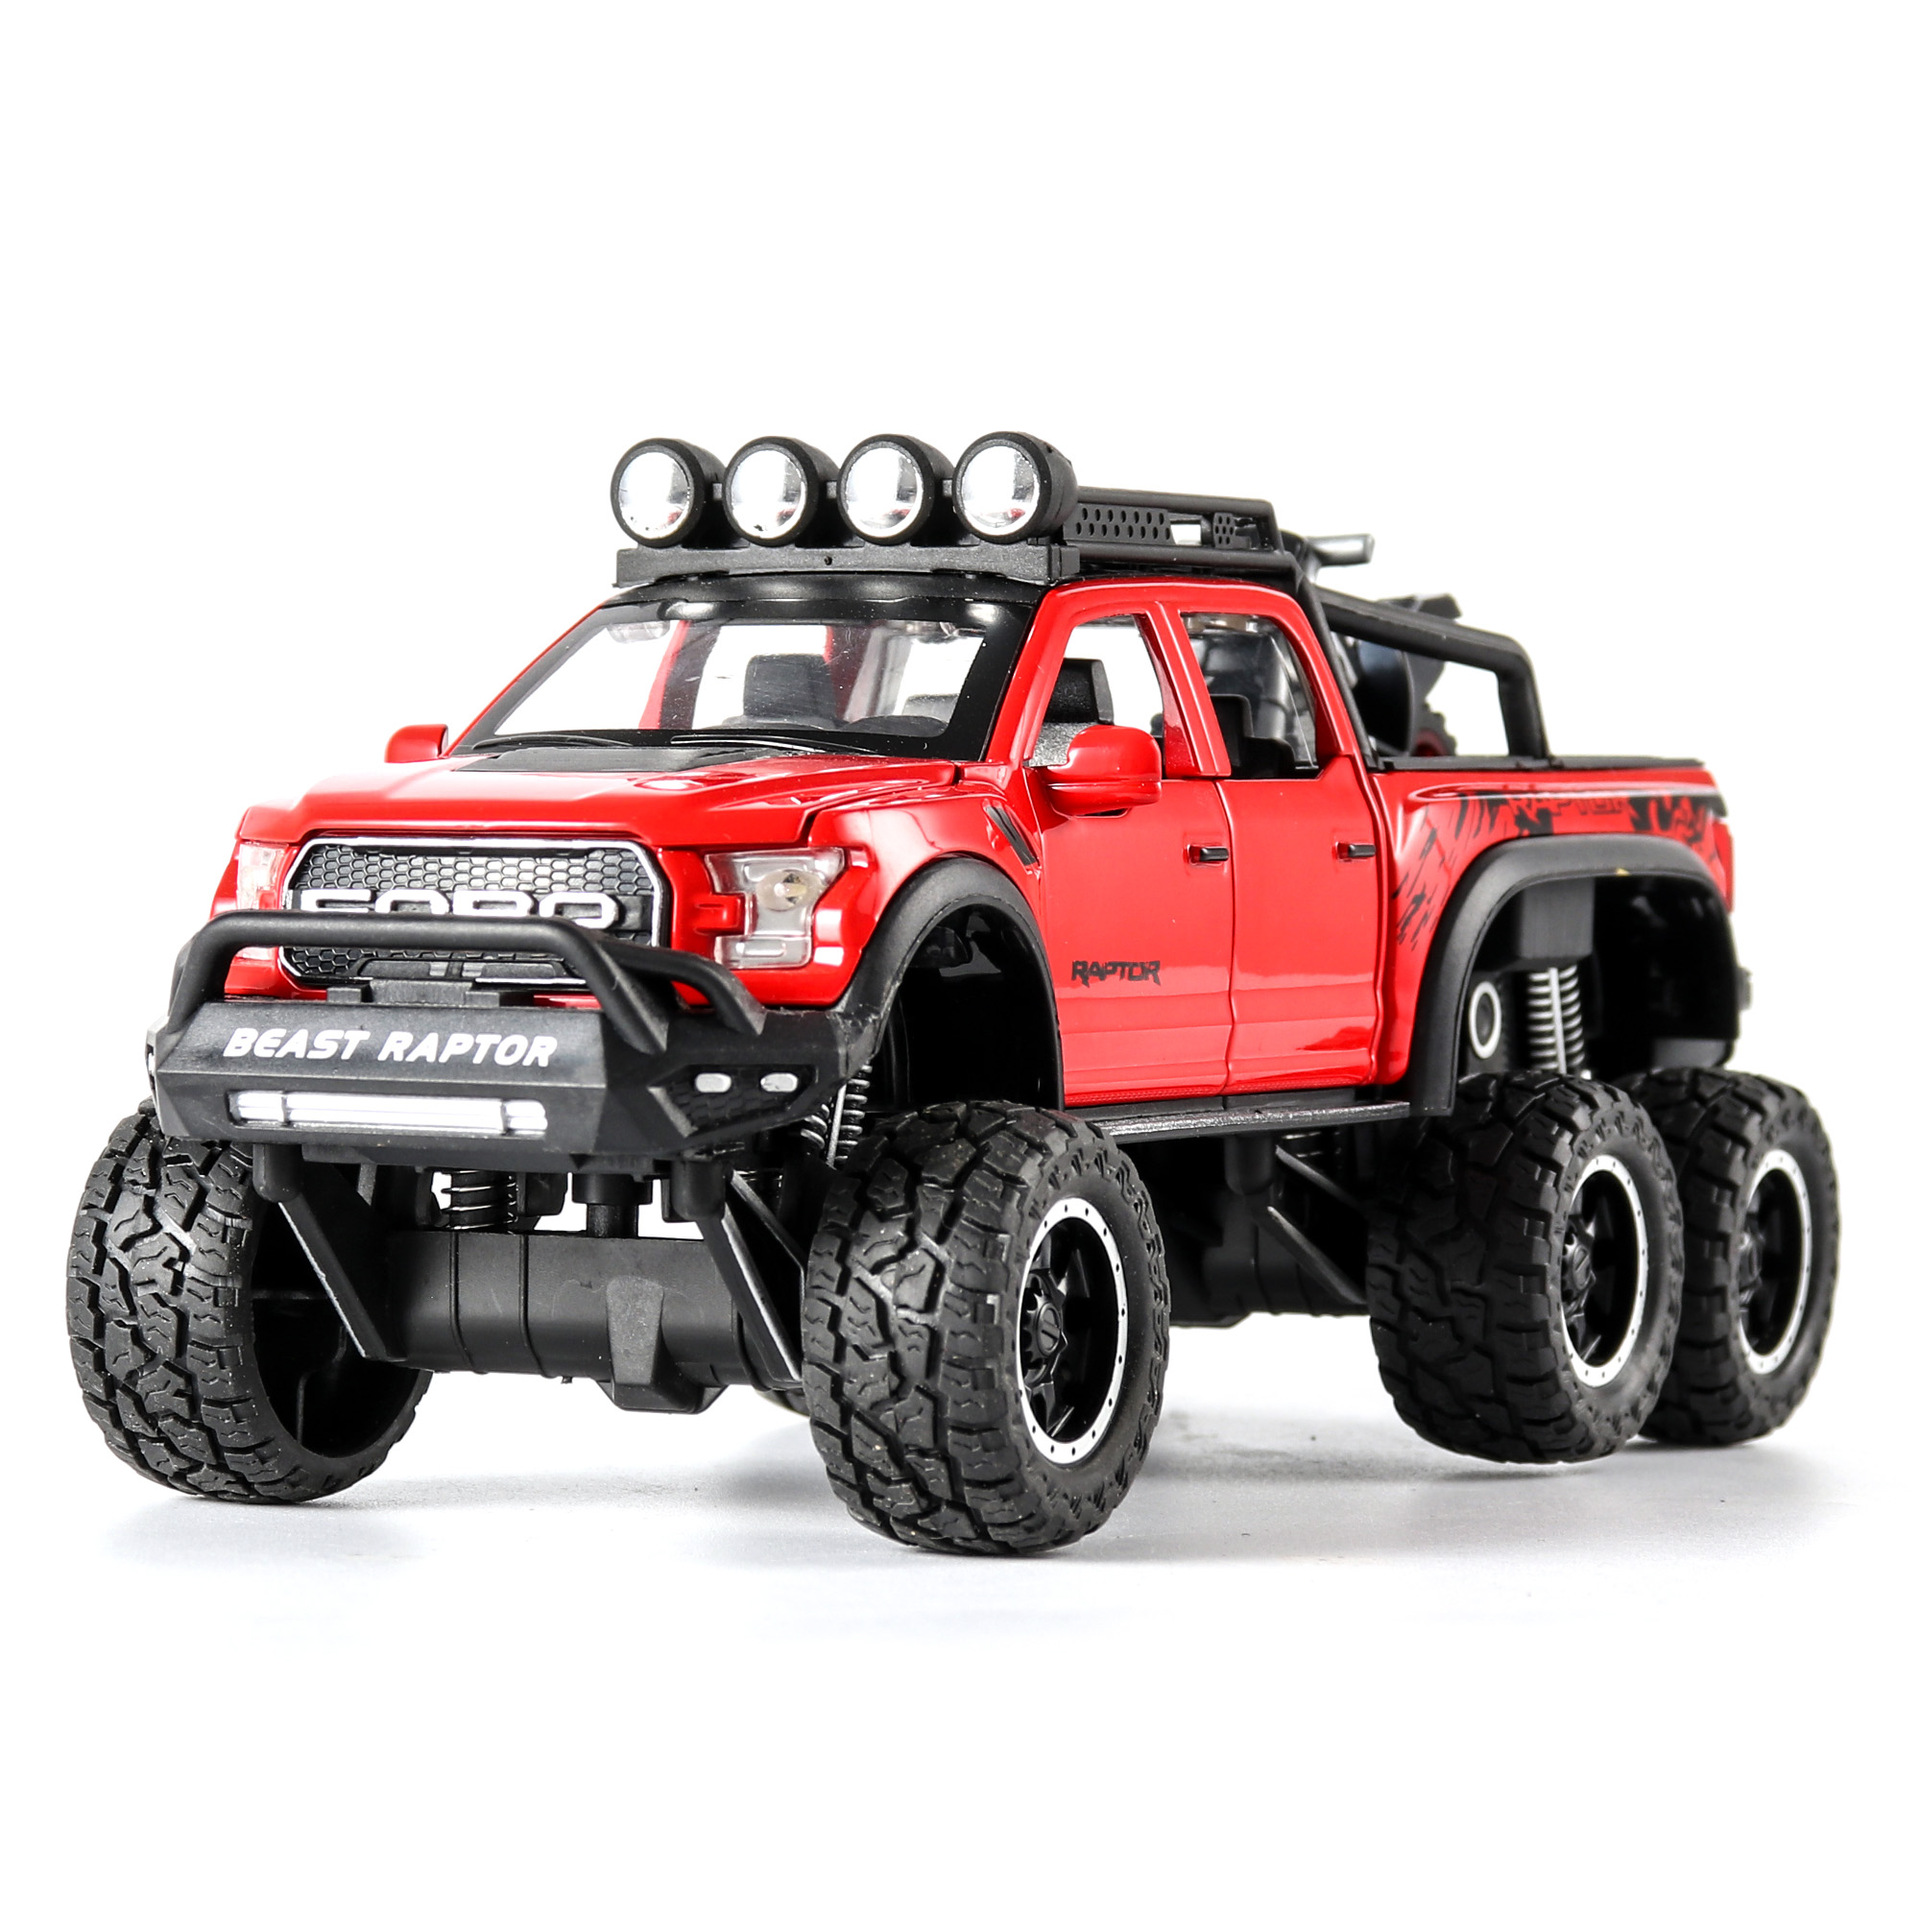 1:32 Ford Raptor F150 Big Wheel Alloy Diecast <font><b>Car</b></font> <font><b>Model</b></font> With With Sound/Light/Pull-back <font><b>Car</b></font> Toys For Children Kids Xmas Gifts image